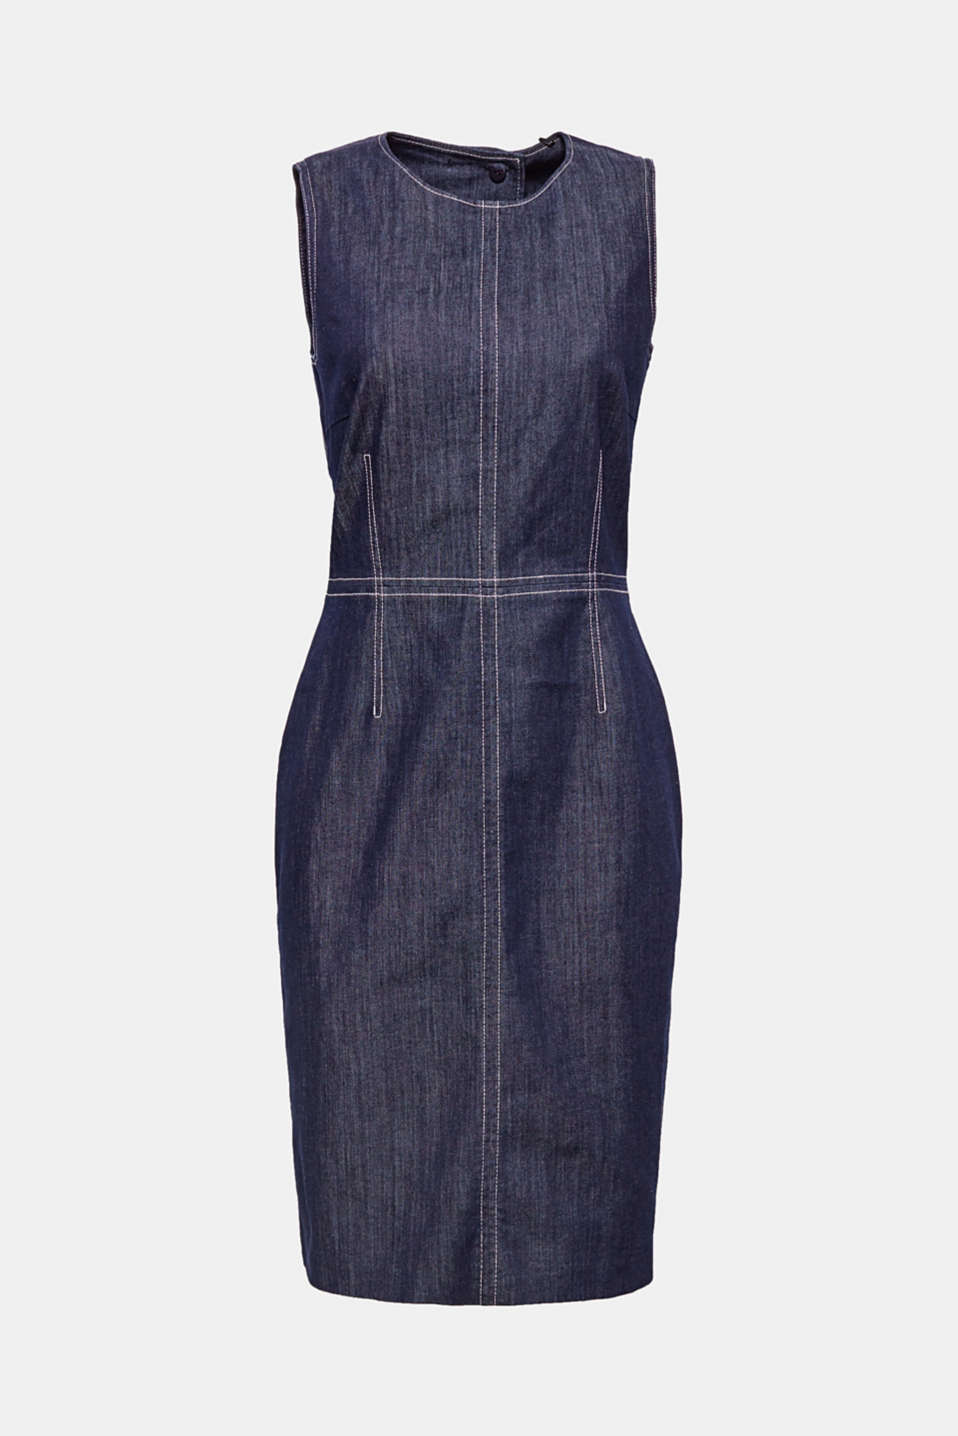 This ultra feminine denim dress provides a body-hugging fit with a sophisticated cut-out at the back.